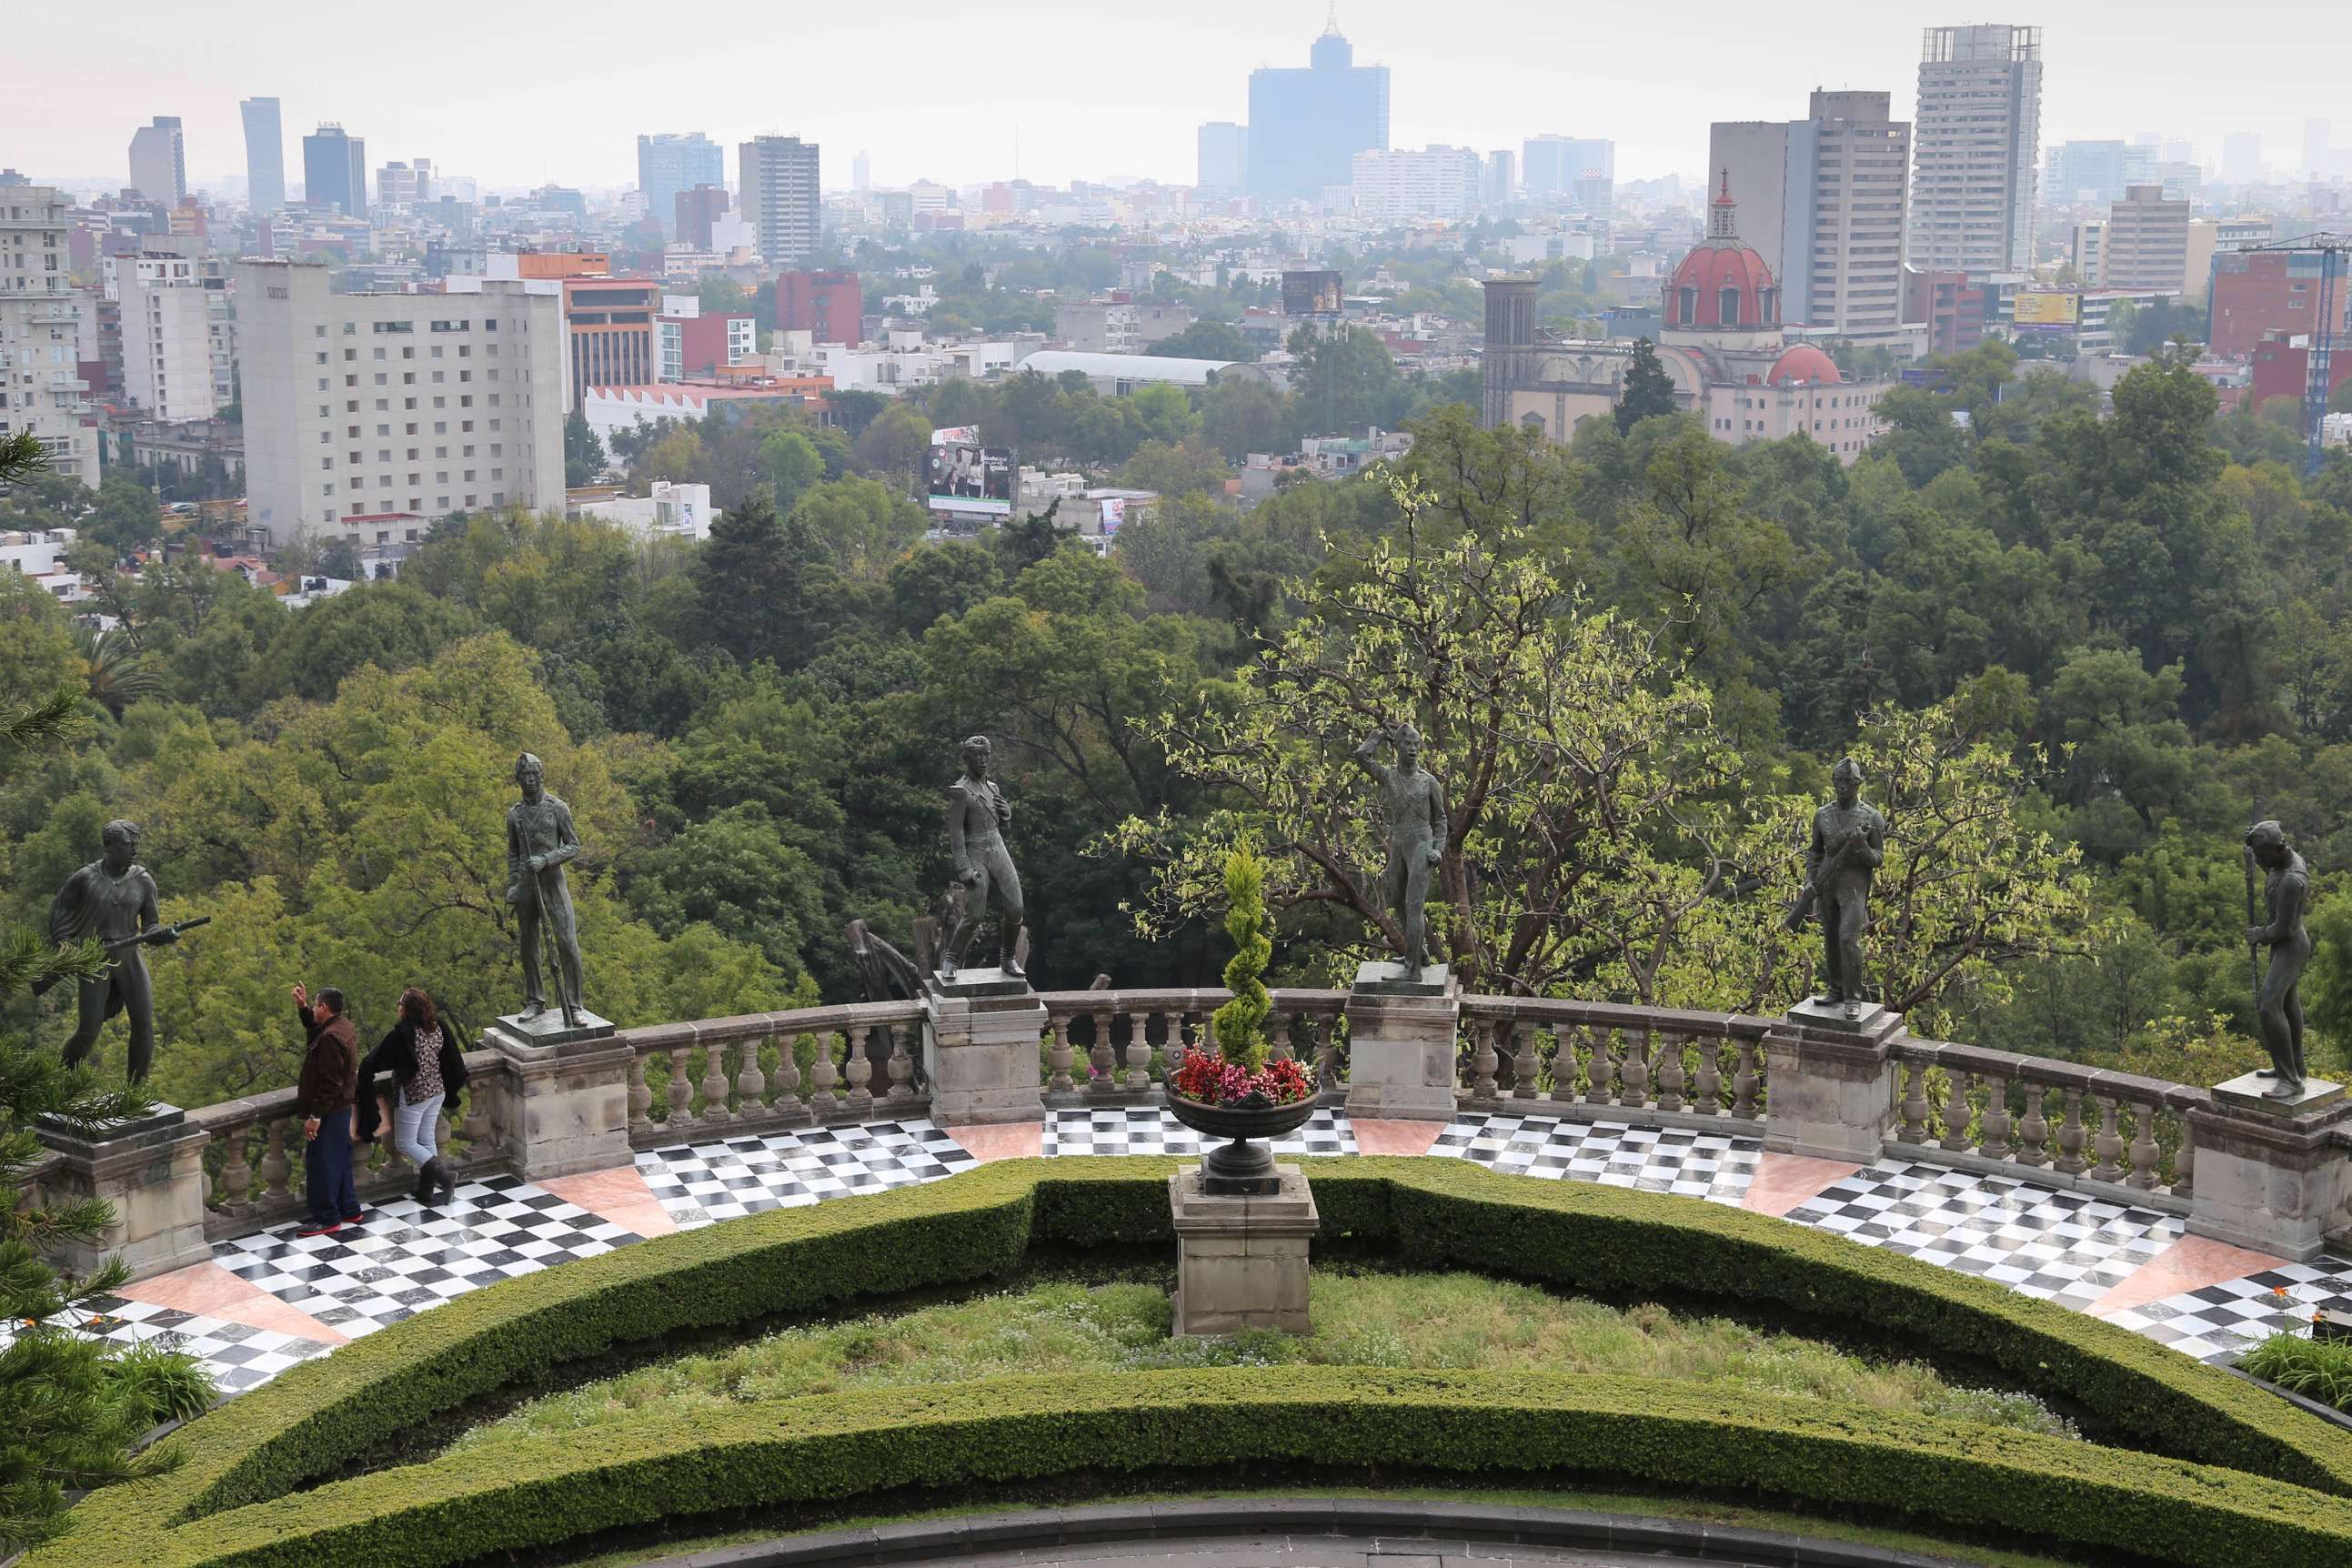 From the balcony of Chapultepec Castle in Mexico City, elements of history, both old and new fill the frame.